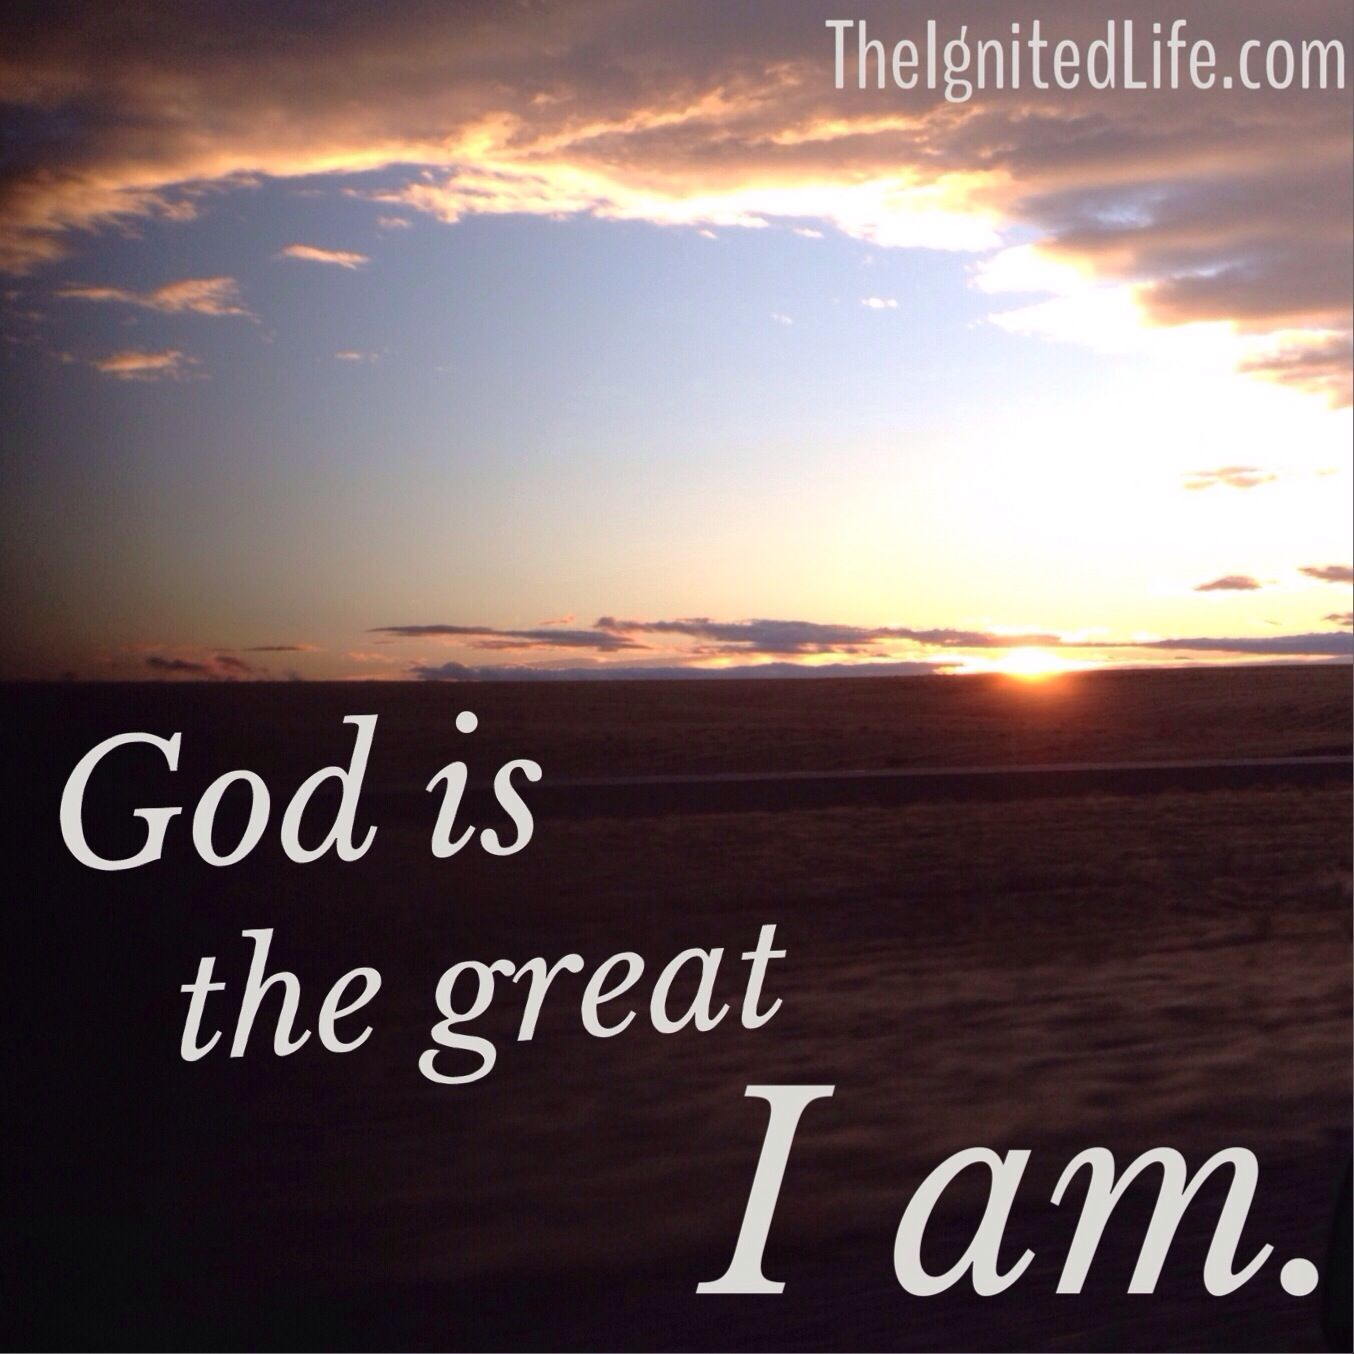 God is so good.  He is the great I AM, not I WAS or WILL BE.  I have all I need in Him.